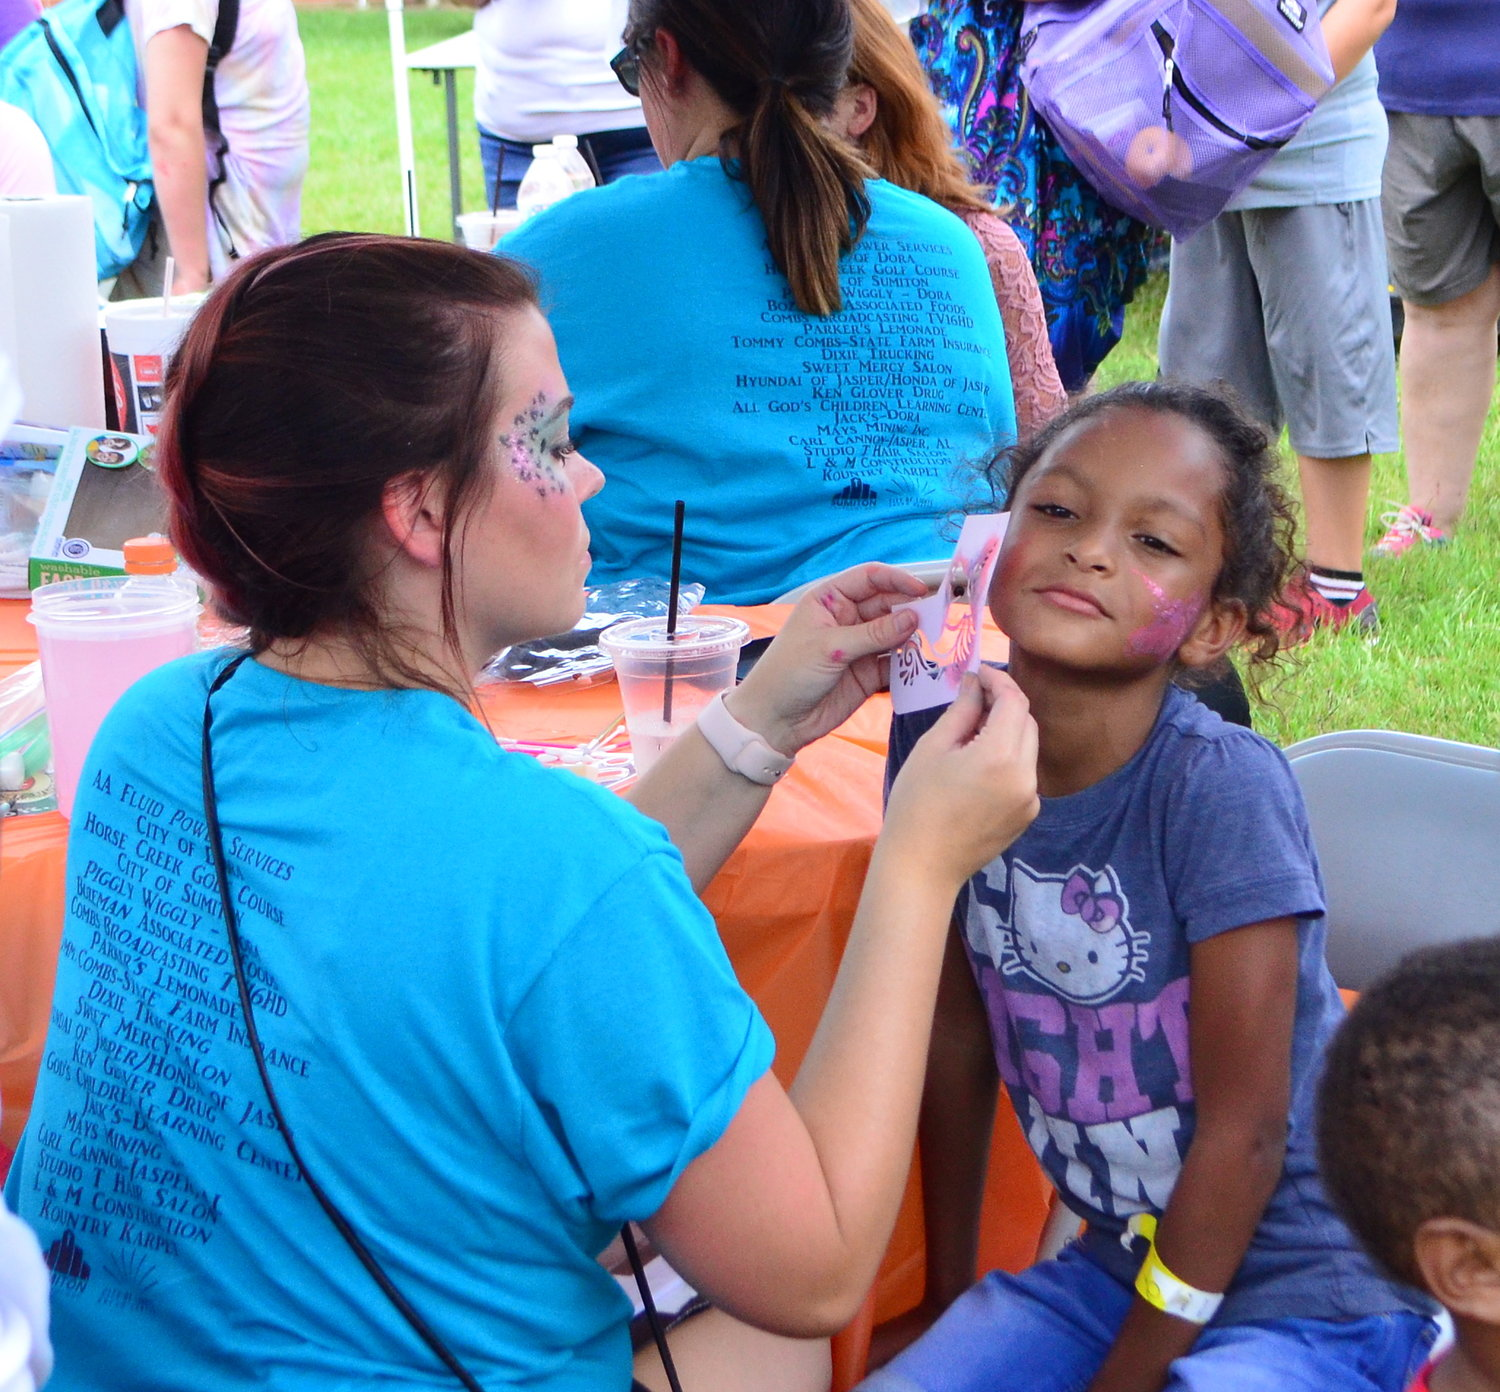 Kids enjoyed face painting and inflatables as part of the Back 2 School Bash Saturday.